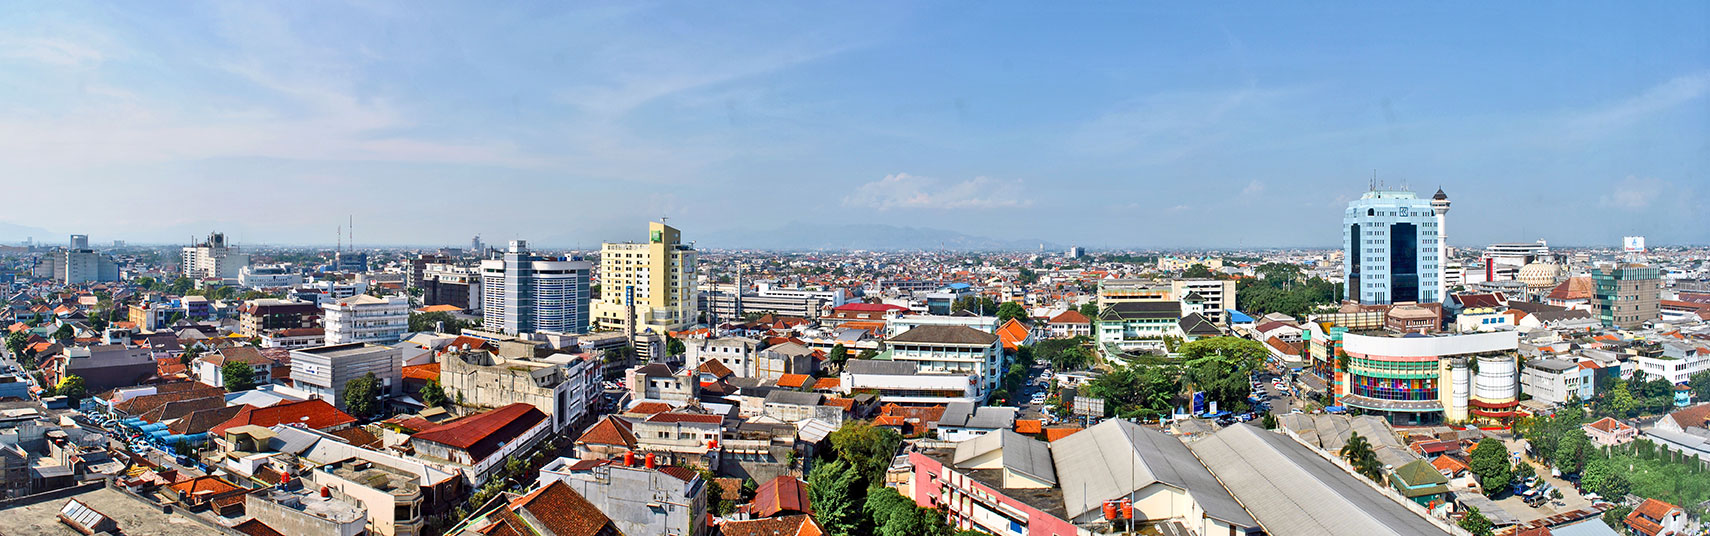 Google Map of Bandung Indonesia Nations Online Project